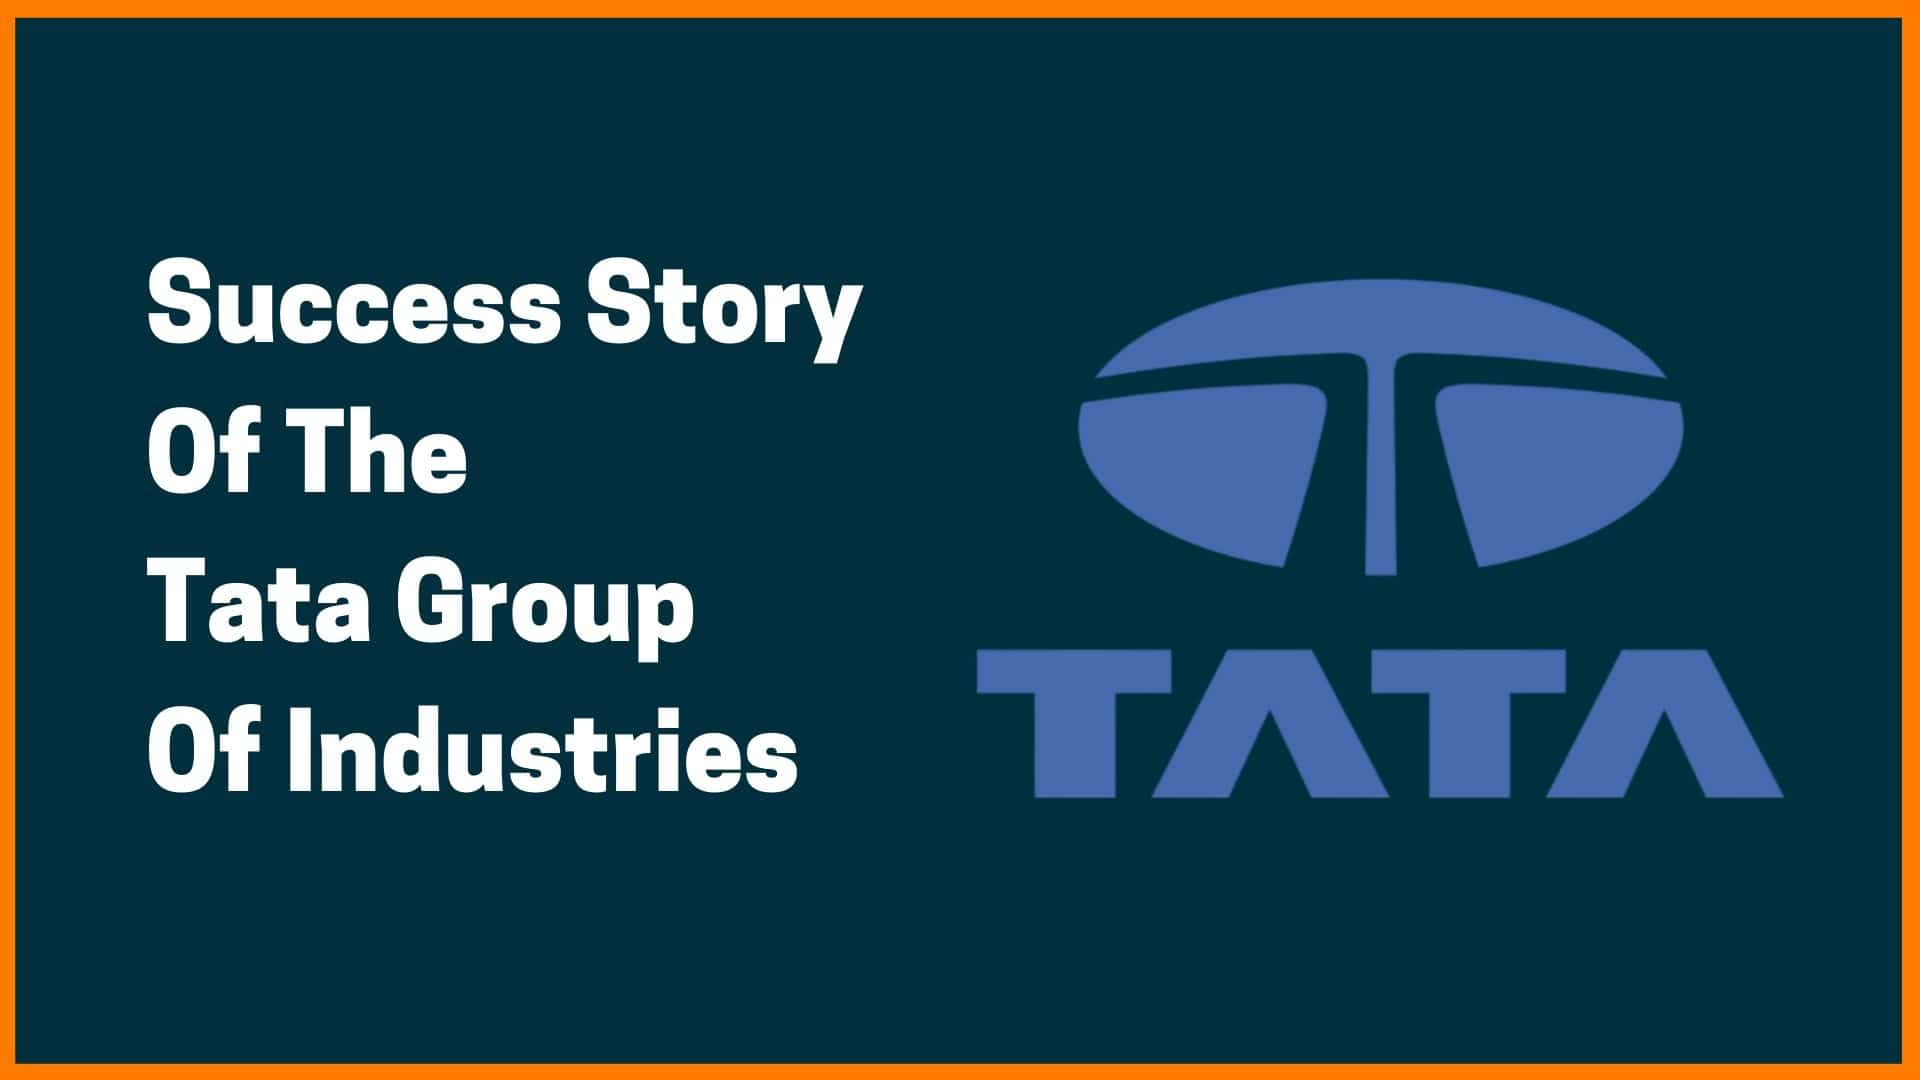 Success Story Of The Tata Group Of Industries [Tata Group Case Study]